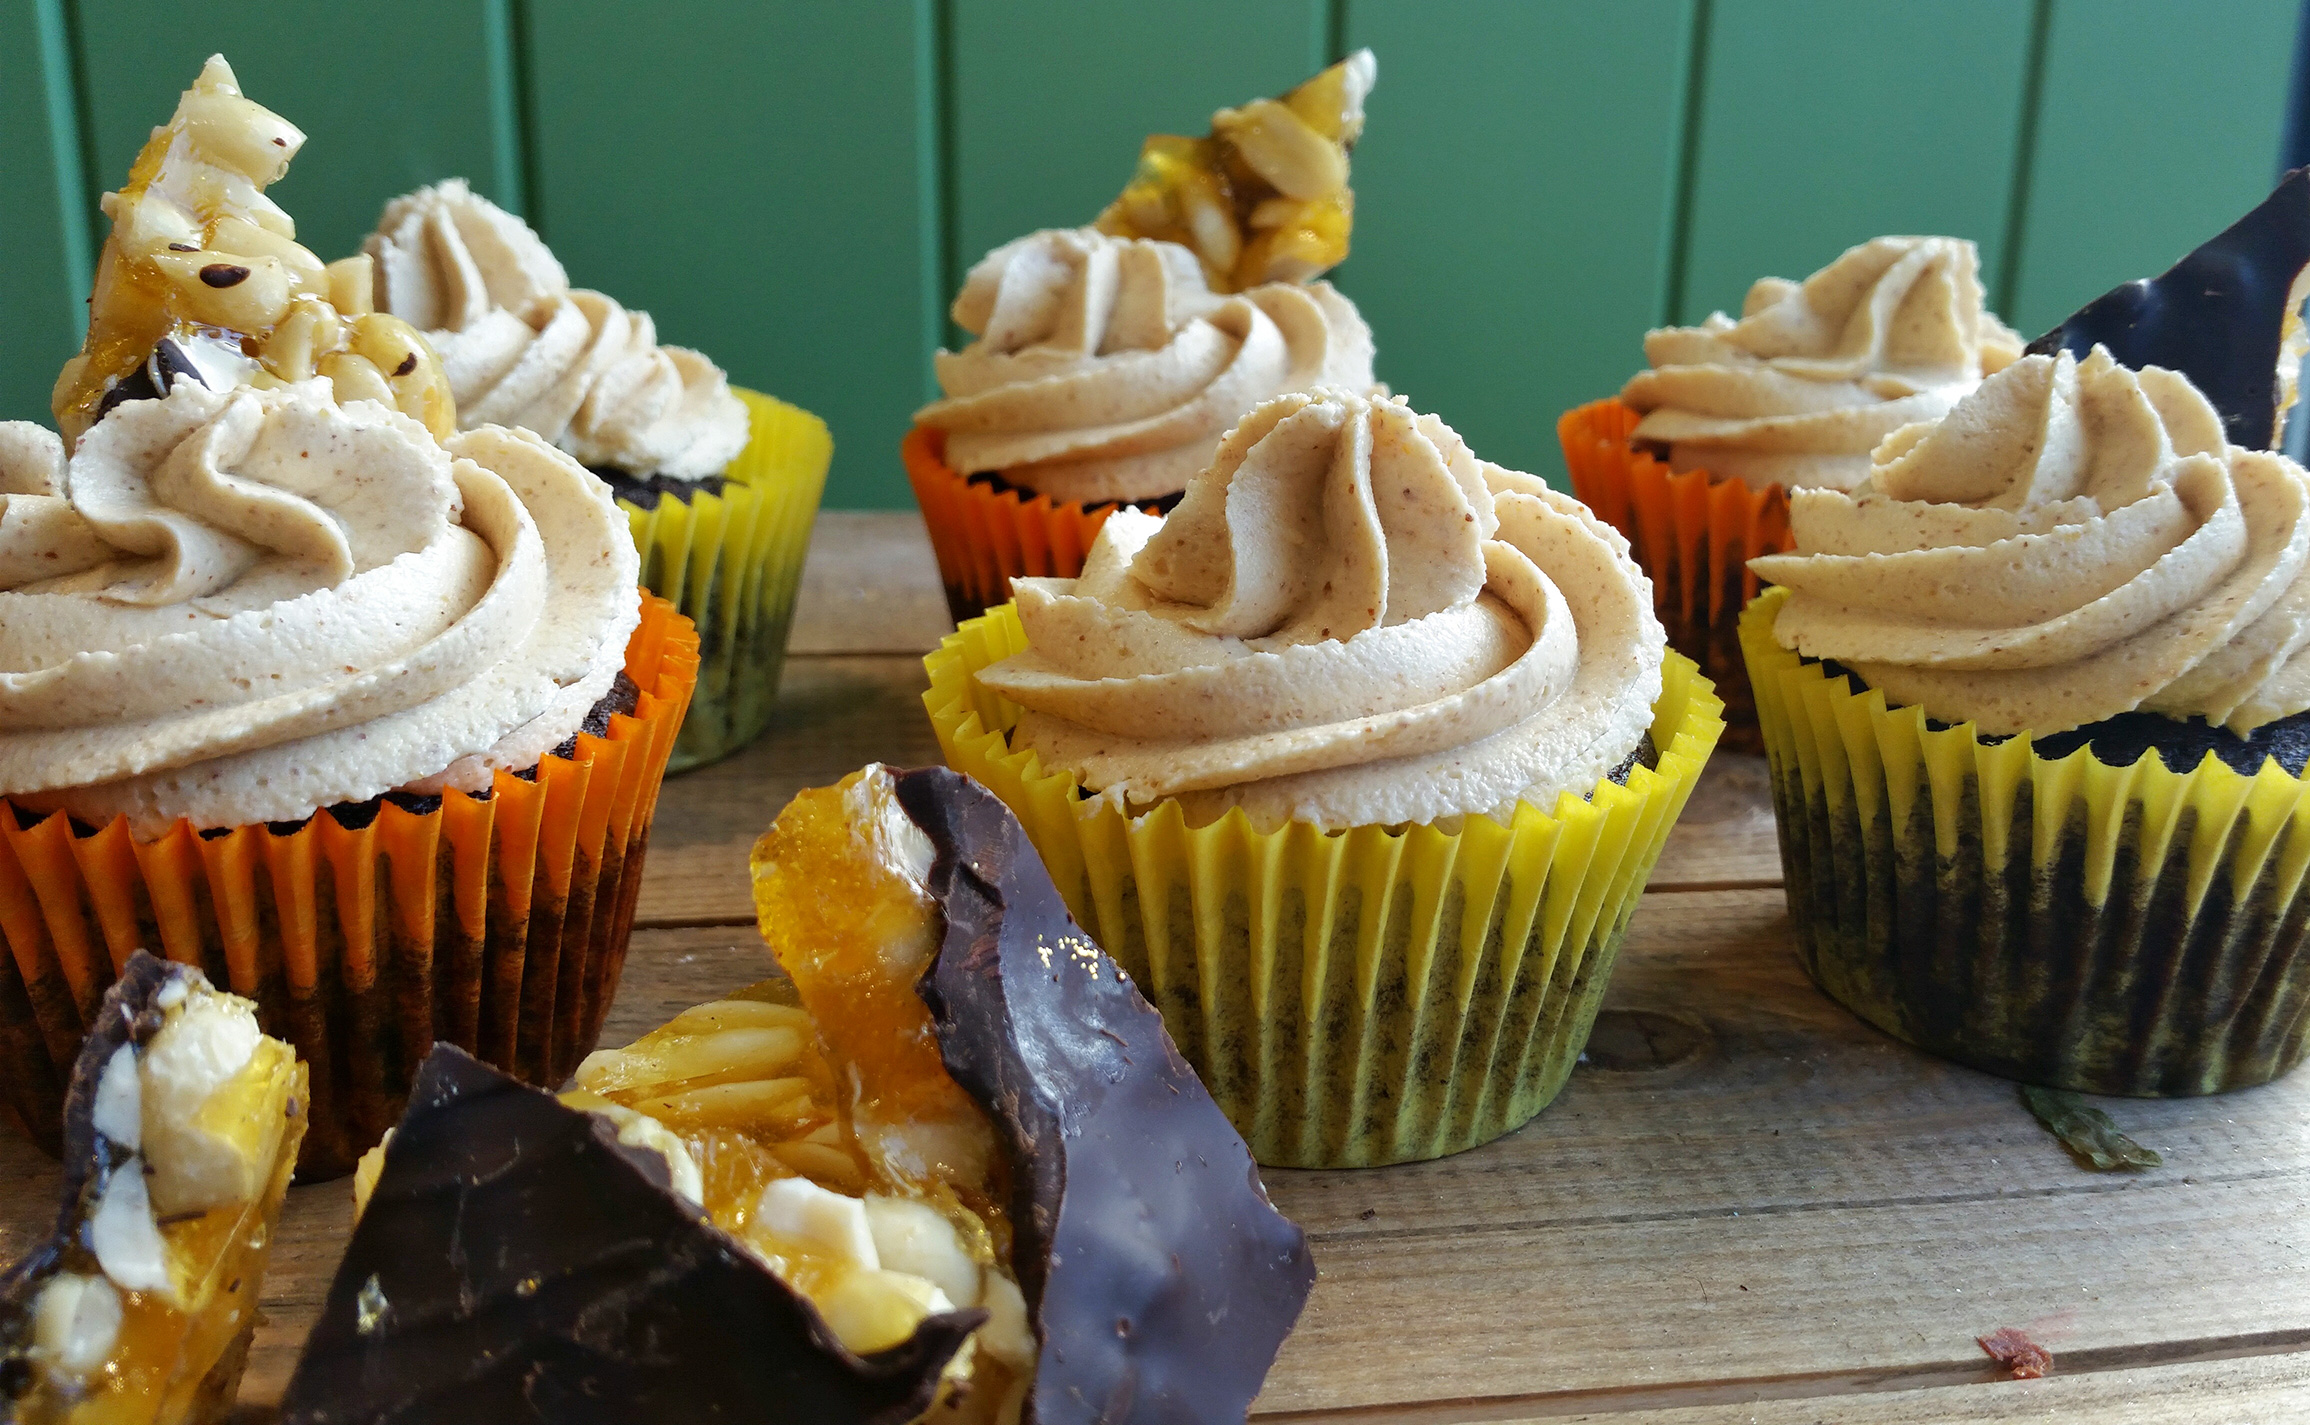 Vegan-Chocolate-Peanut-Butter-Cupcakes-web